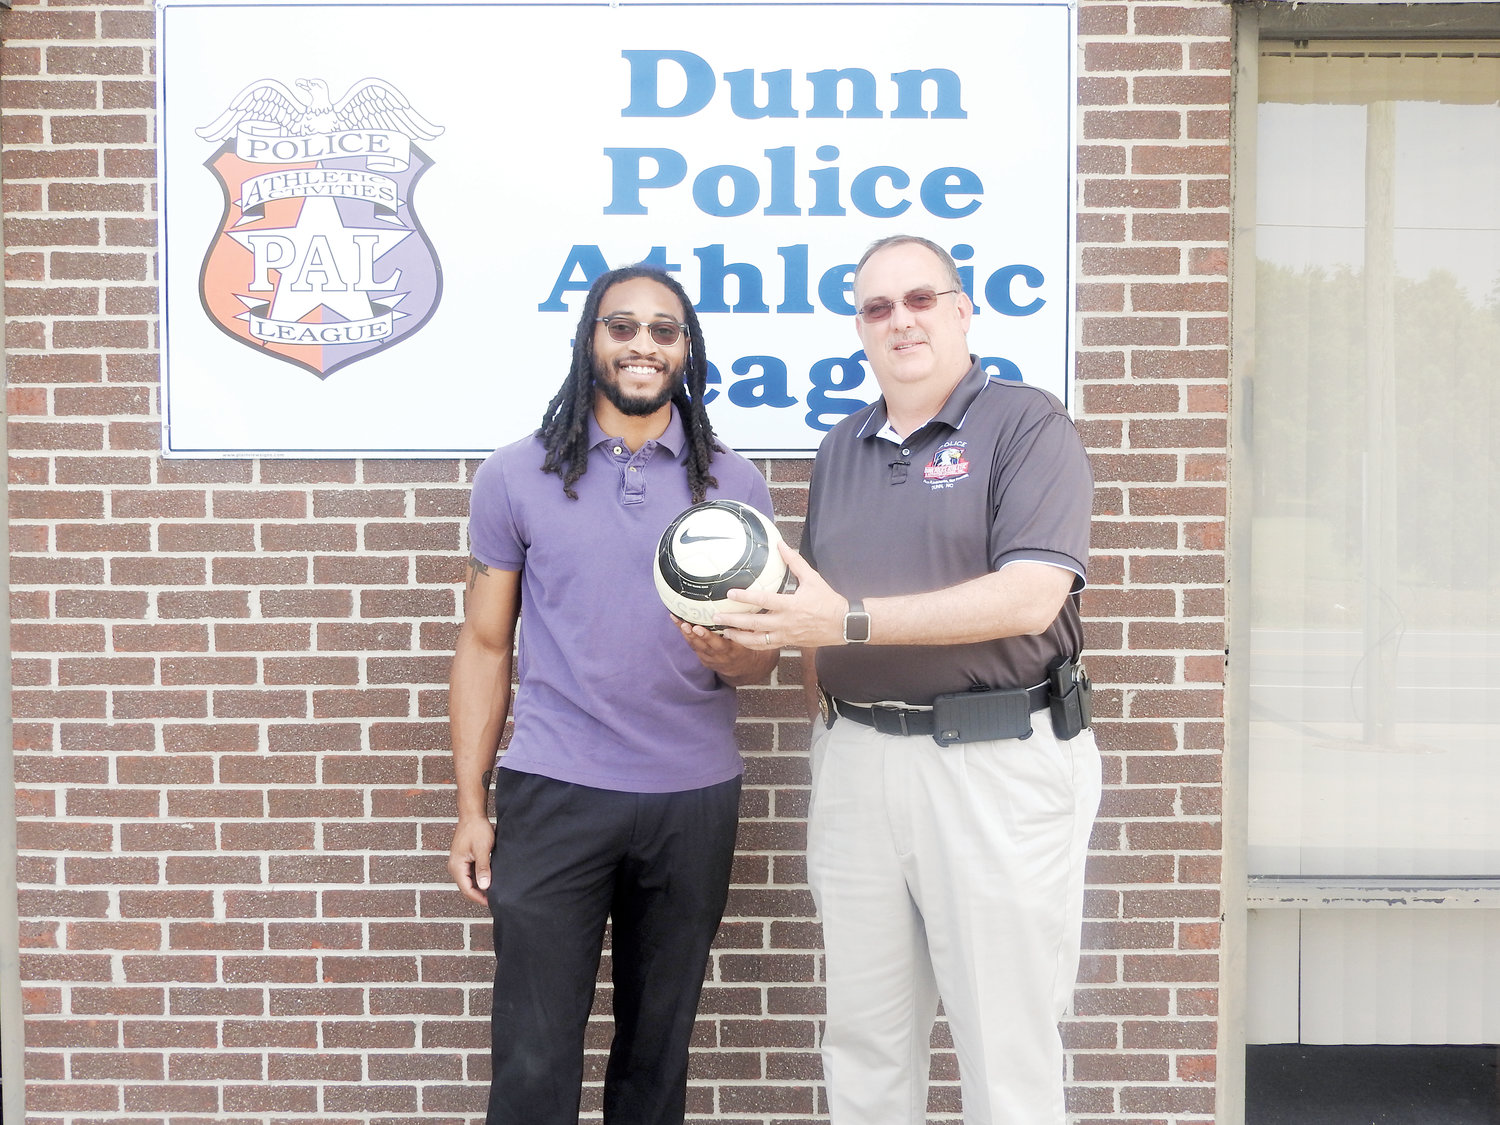 Dunn PAL Soccer Program Director Jonathan Bridges and Executive Director Rodney Rowland, right, pose together outside the Dunn PAL office. They'll be working together to start up PAL's new soccer program this summer.